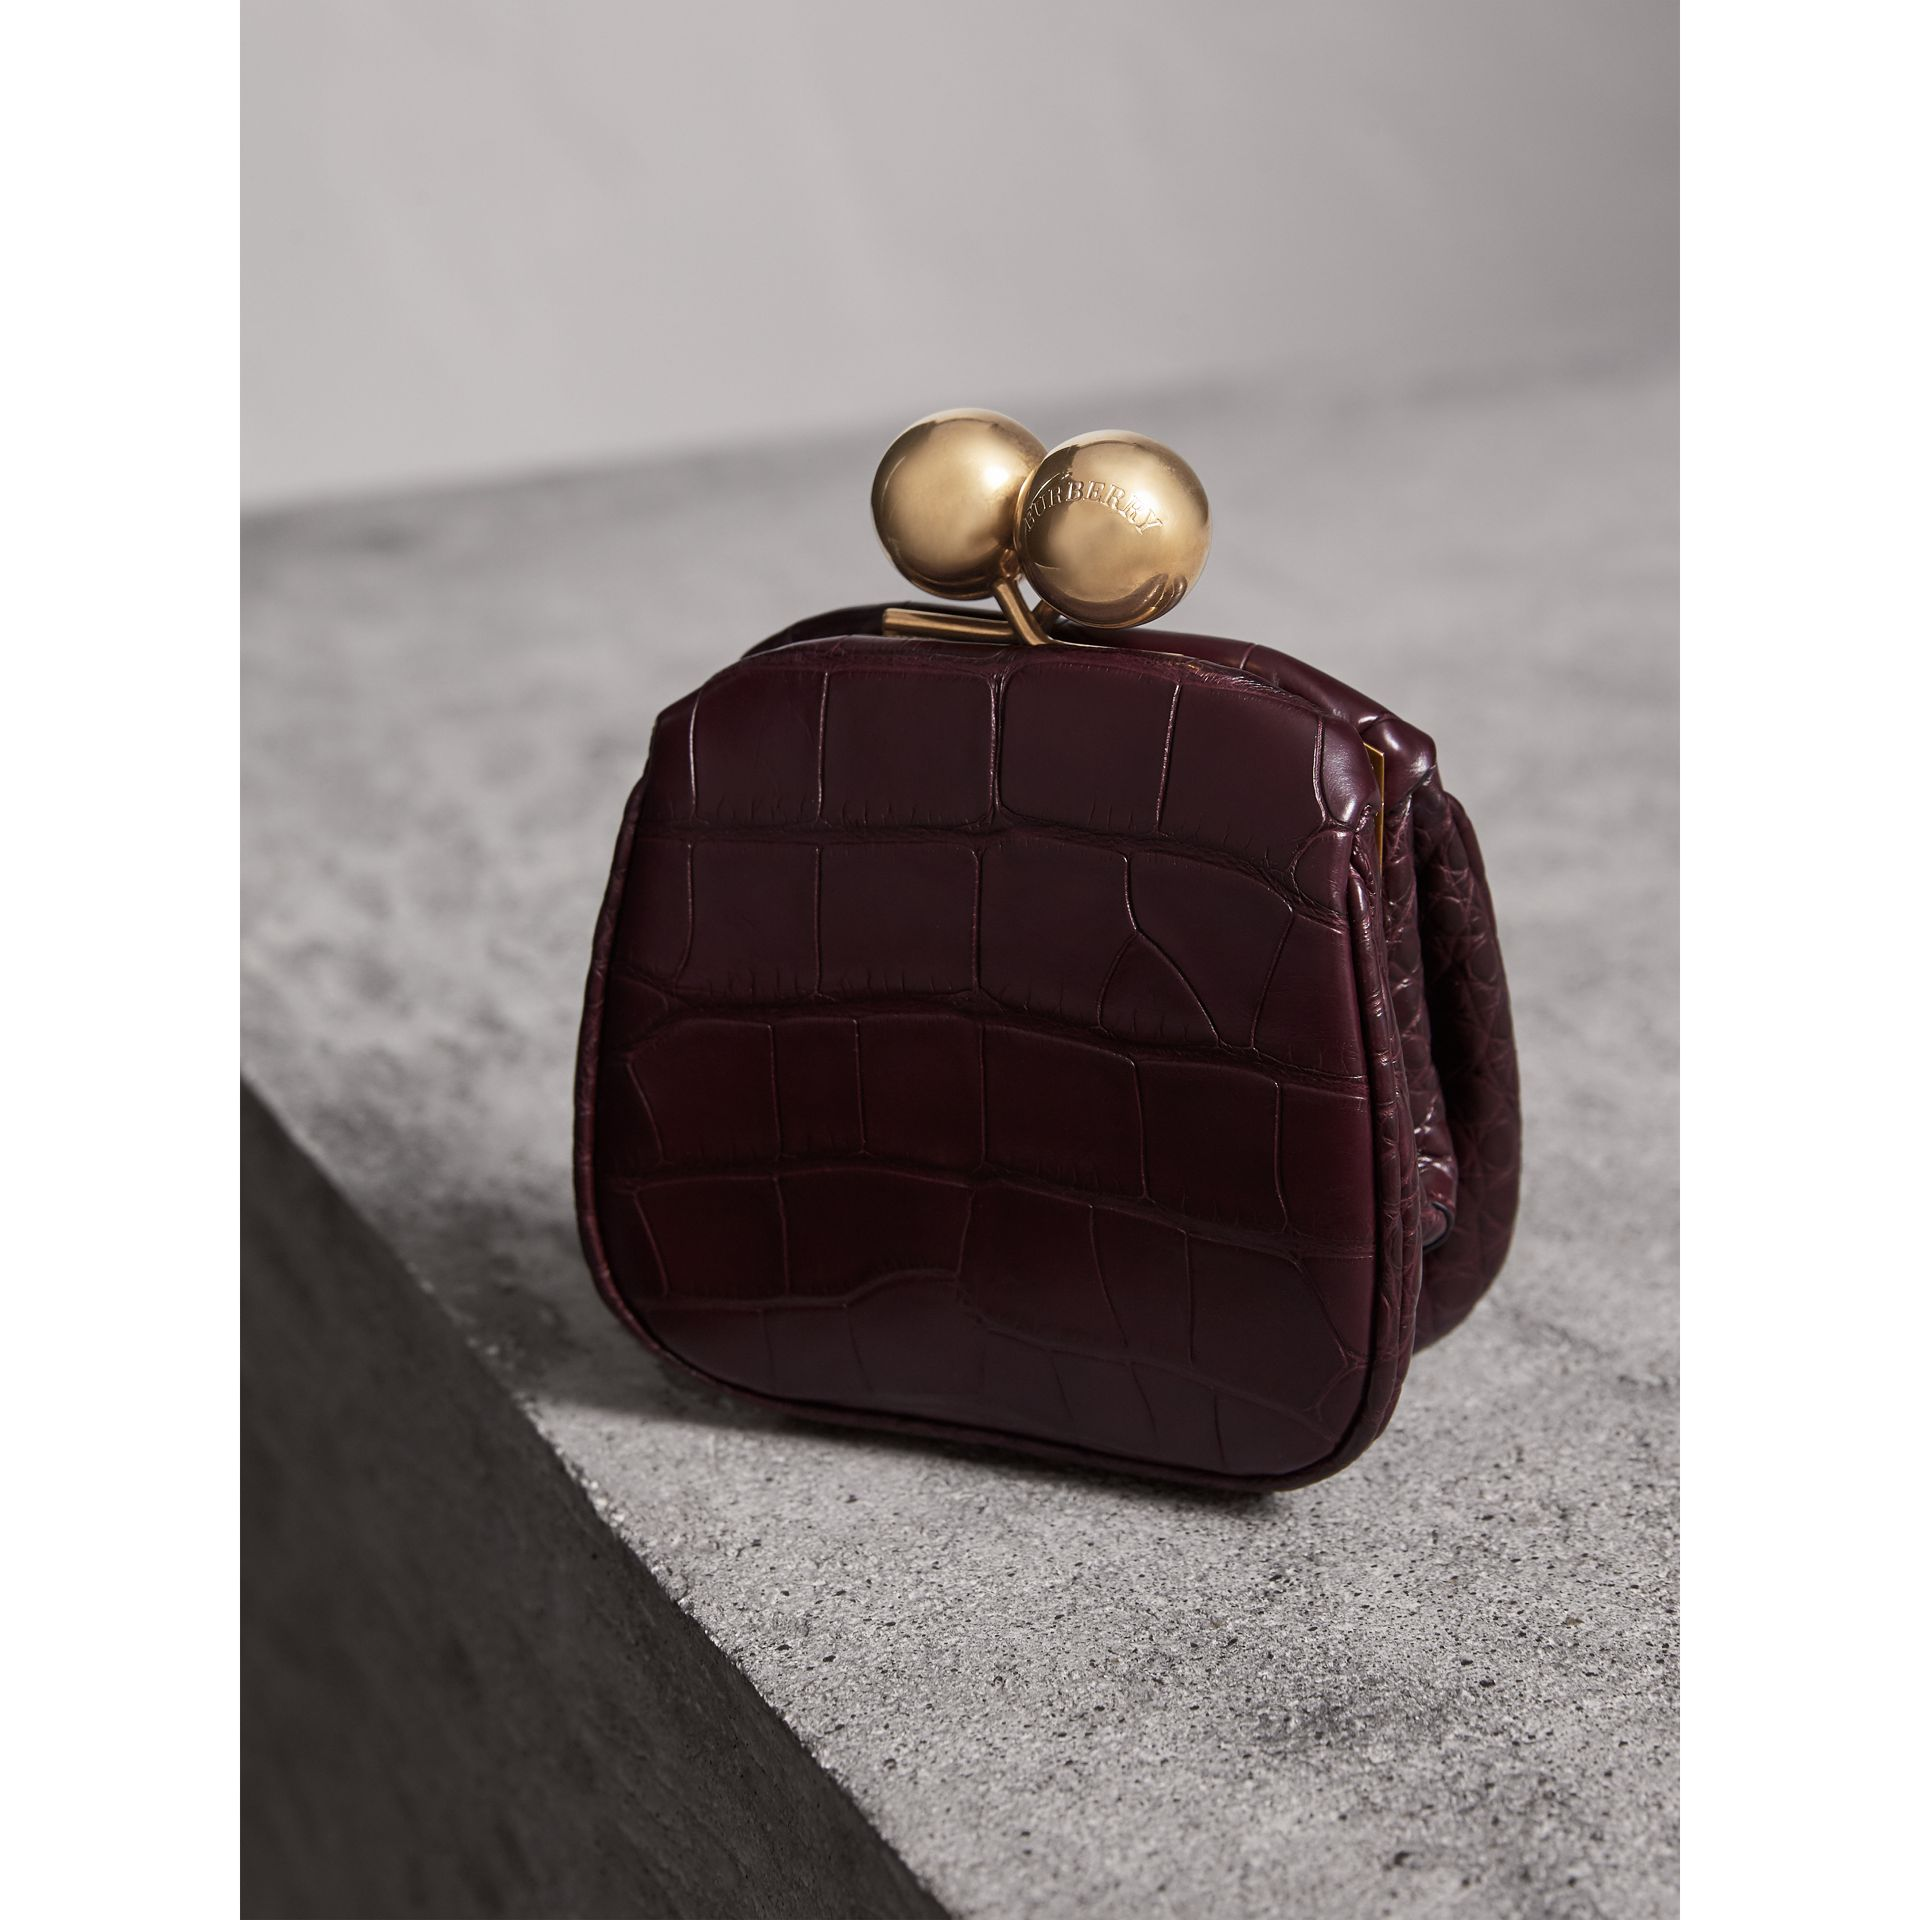 Mini Alligator Frame Bag in Dark Claret - Women | Burberry - gallery image 2